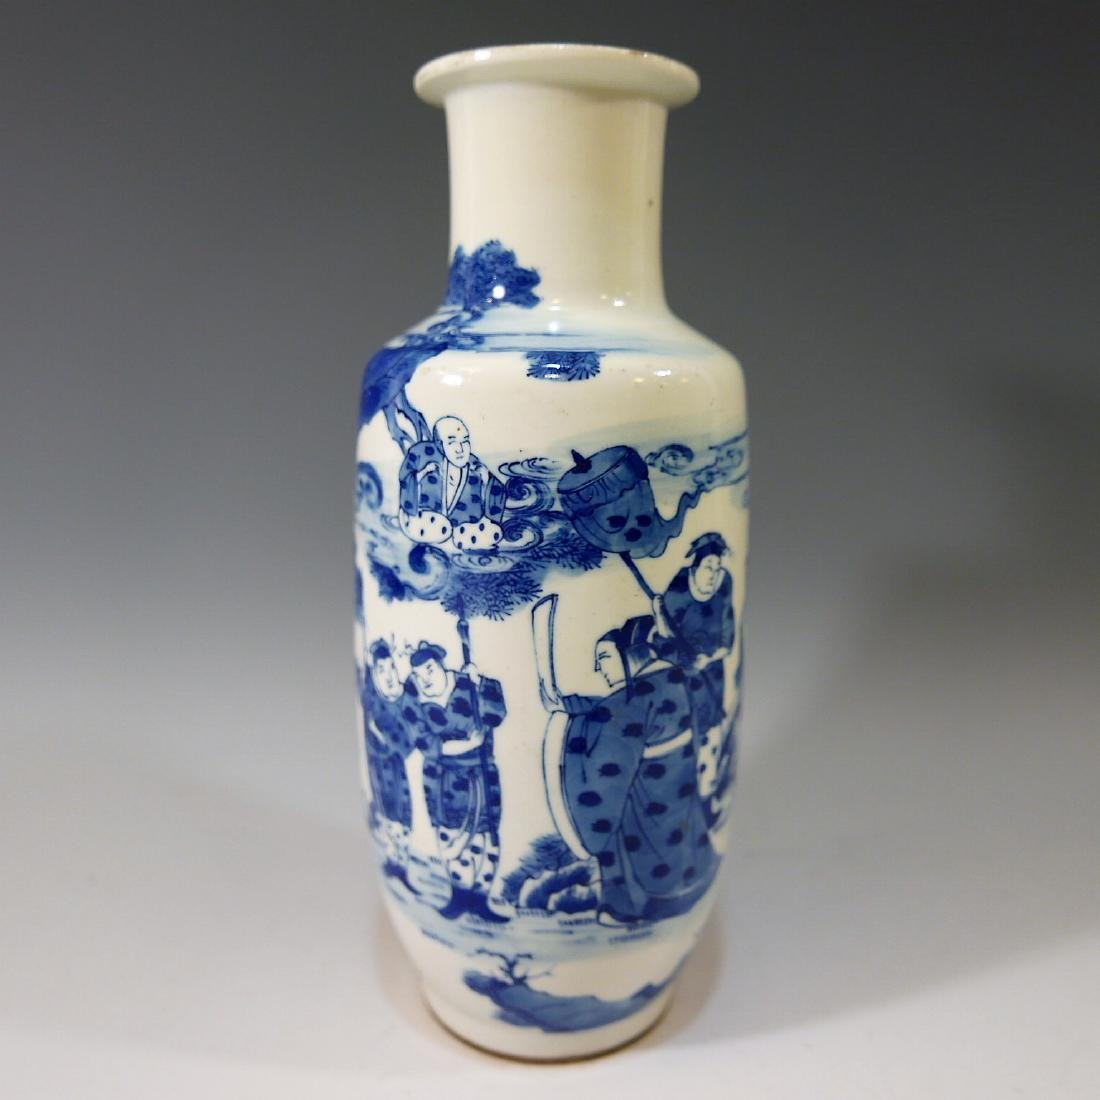 CHINESE ANTIQUE BLUE AND WHITE VASE - 18TH CENTURY